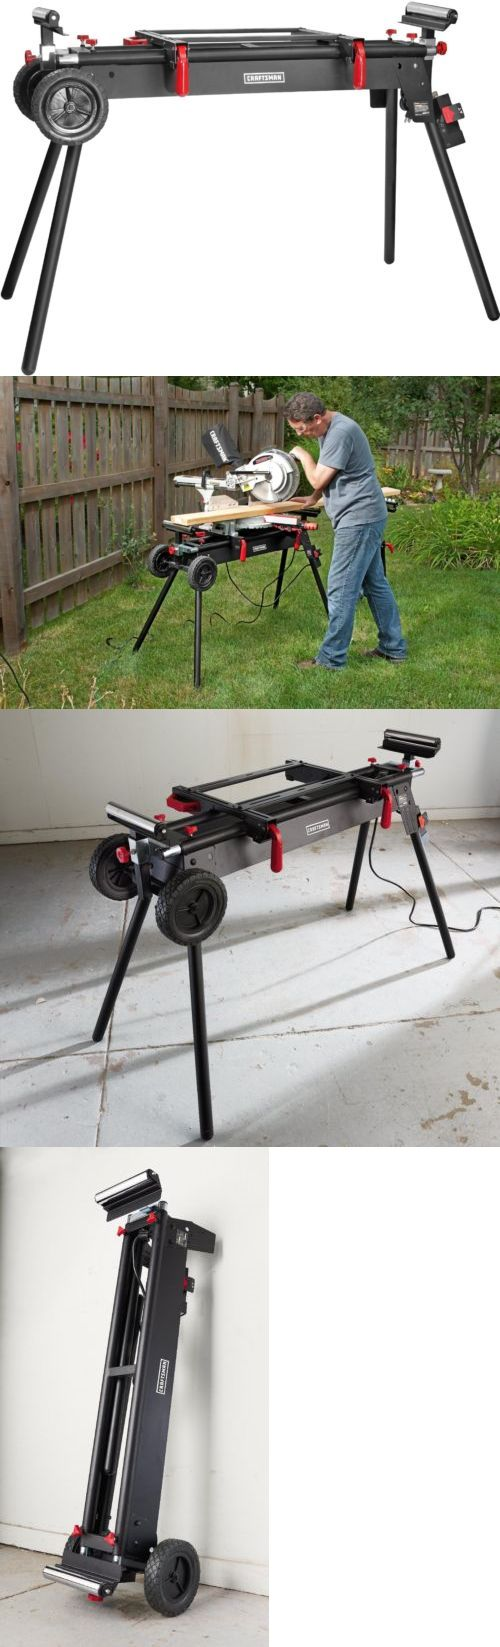 Miter and Chop Saws 20787: Craftsman Portable Deluxe Adjustable Garage Mechanic Wood Miter Saw Stand Bench -> BUY IT NOW ONLY: $127.53 on eBay!